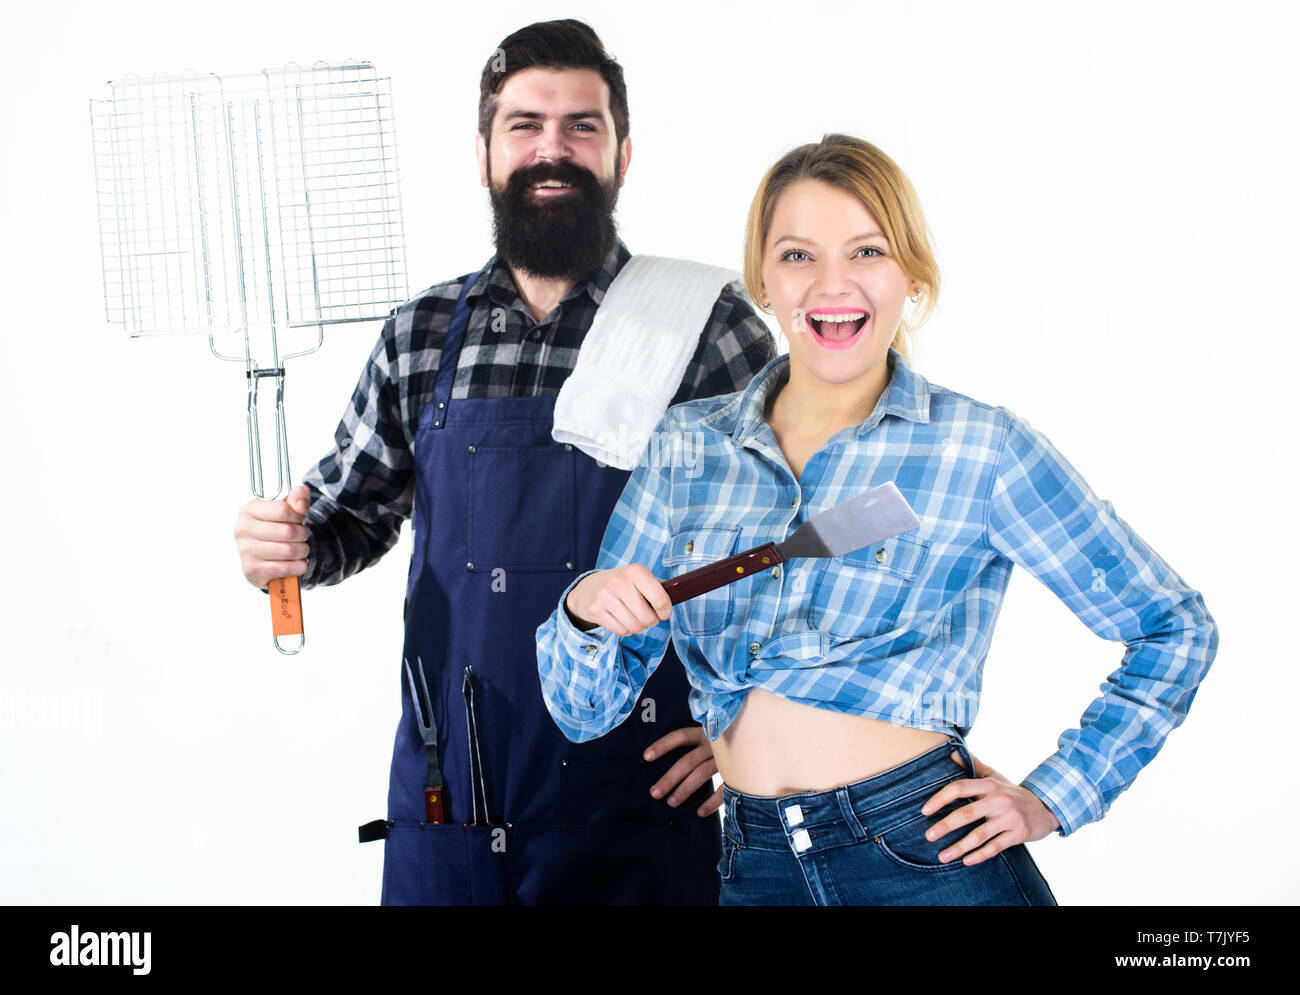 Family weekend. Picnic barbecue. food cooking recipe. Man bearded hipster and girl. Preparation and culinary. Couple in love hold kitchen utensils. Tools for roasting meat. Chill time with friends. - Stock Image